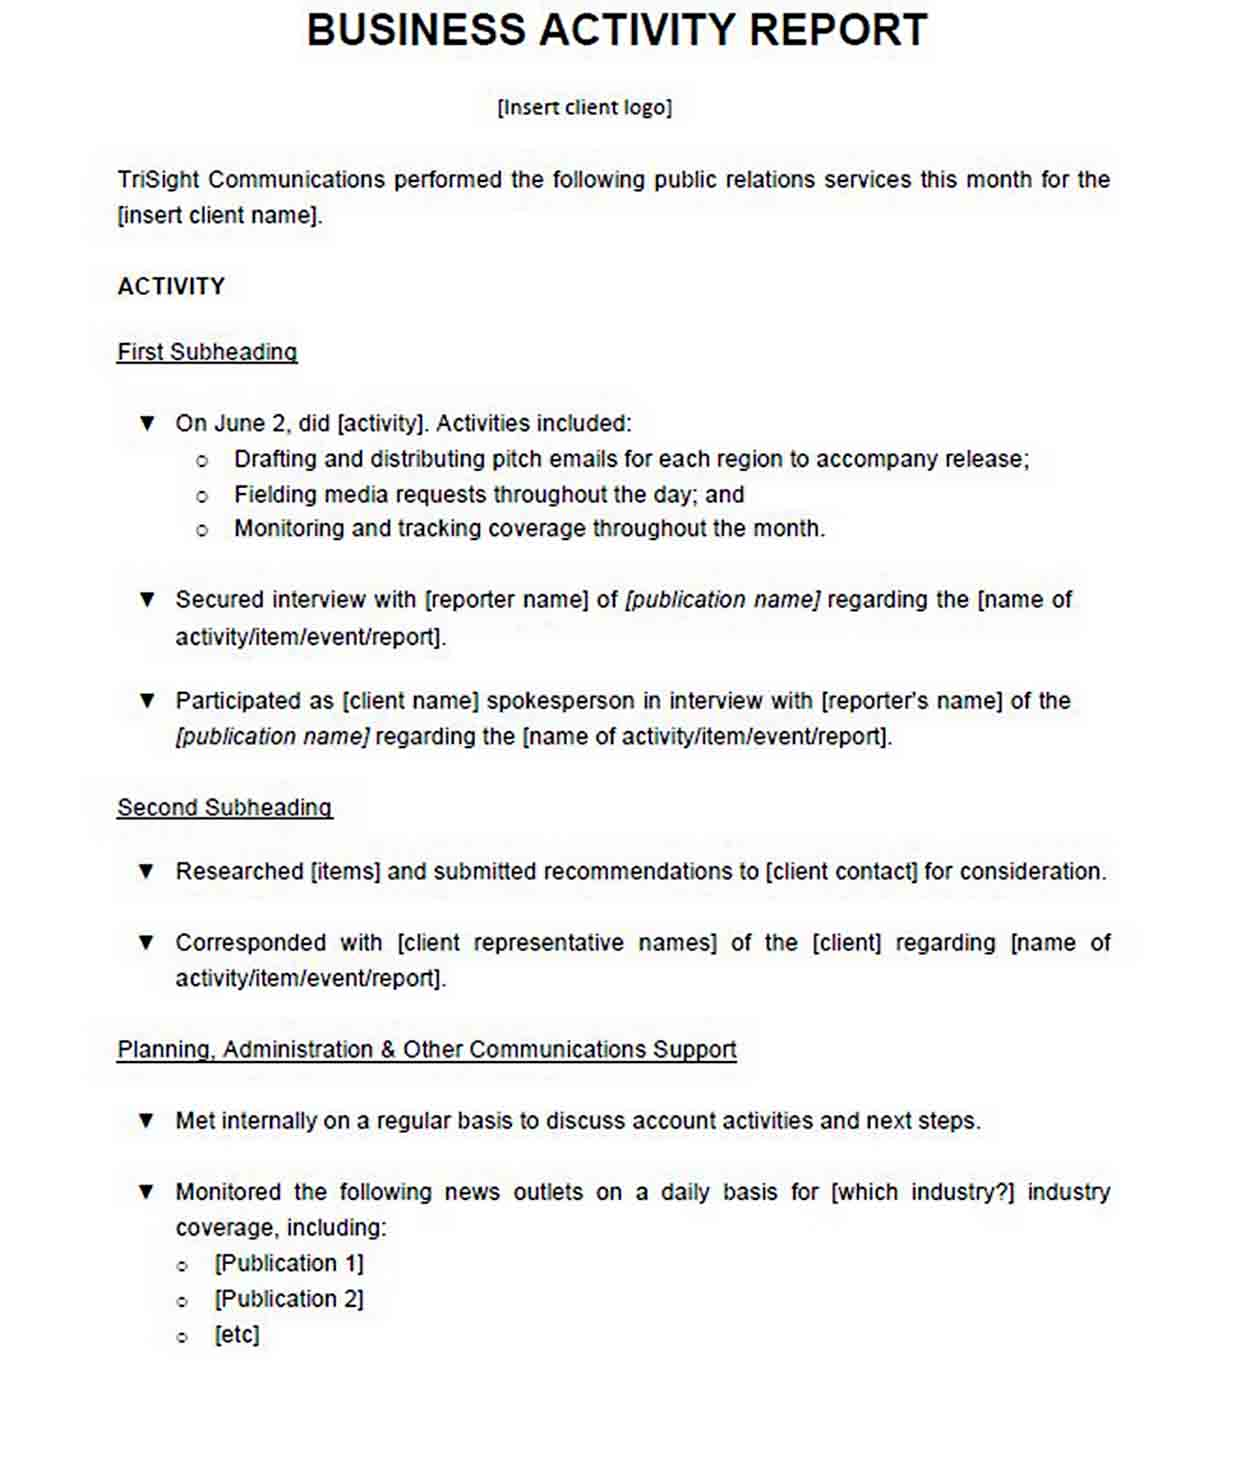 Business Activity Report Format sample